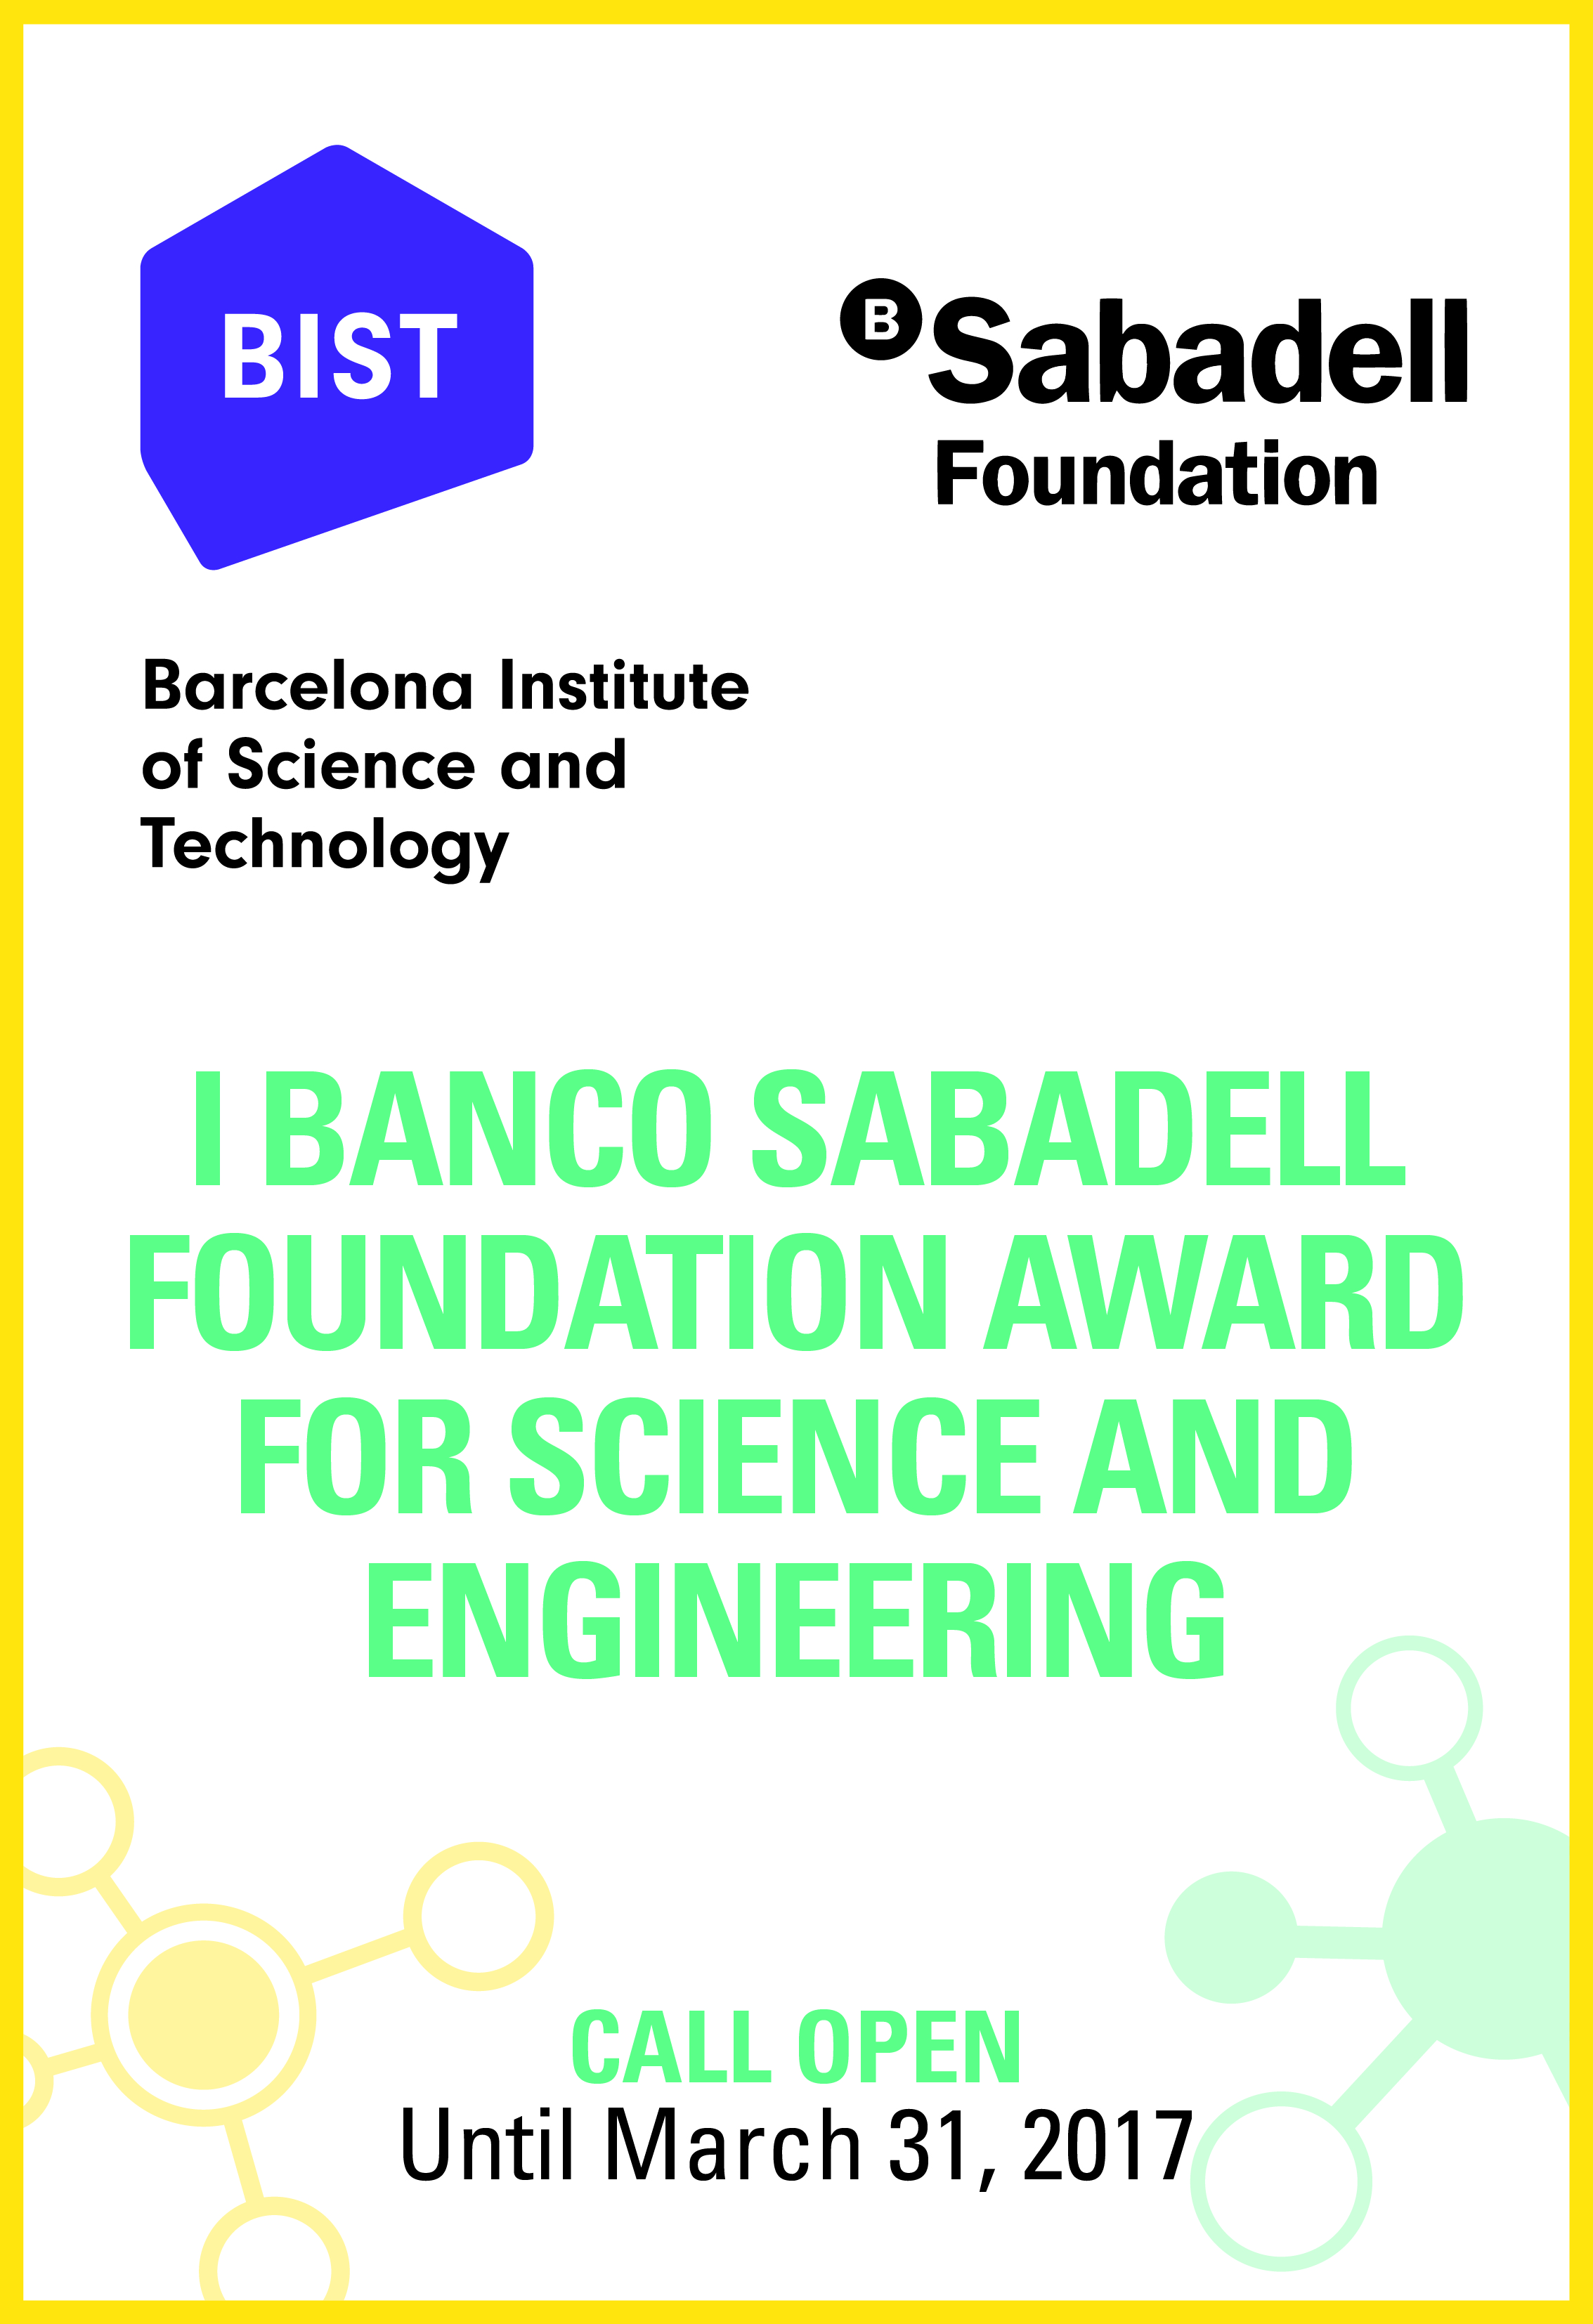 First edition of the Banco Sabadell Foundation award for Science and Engineering